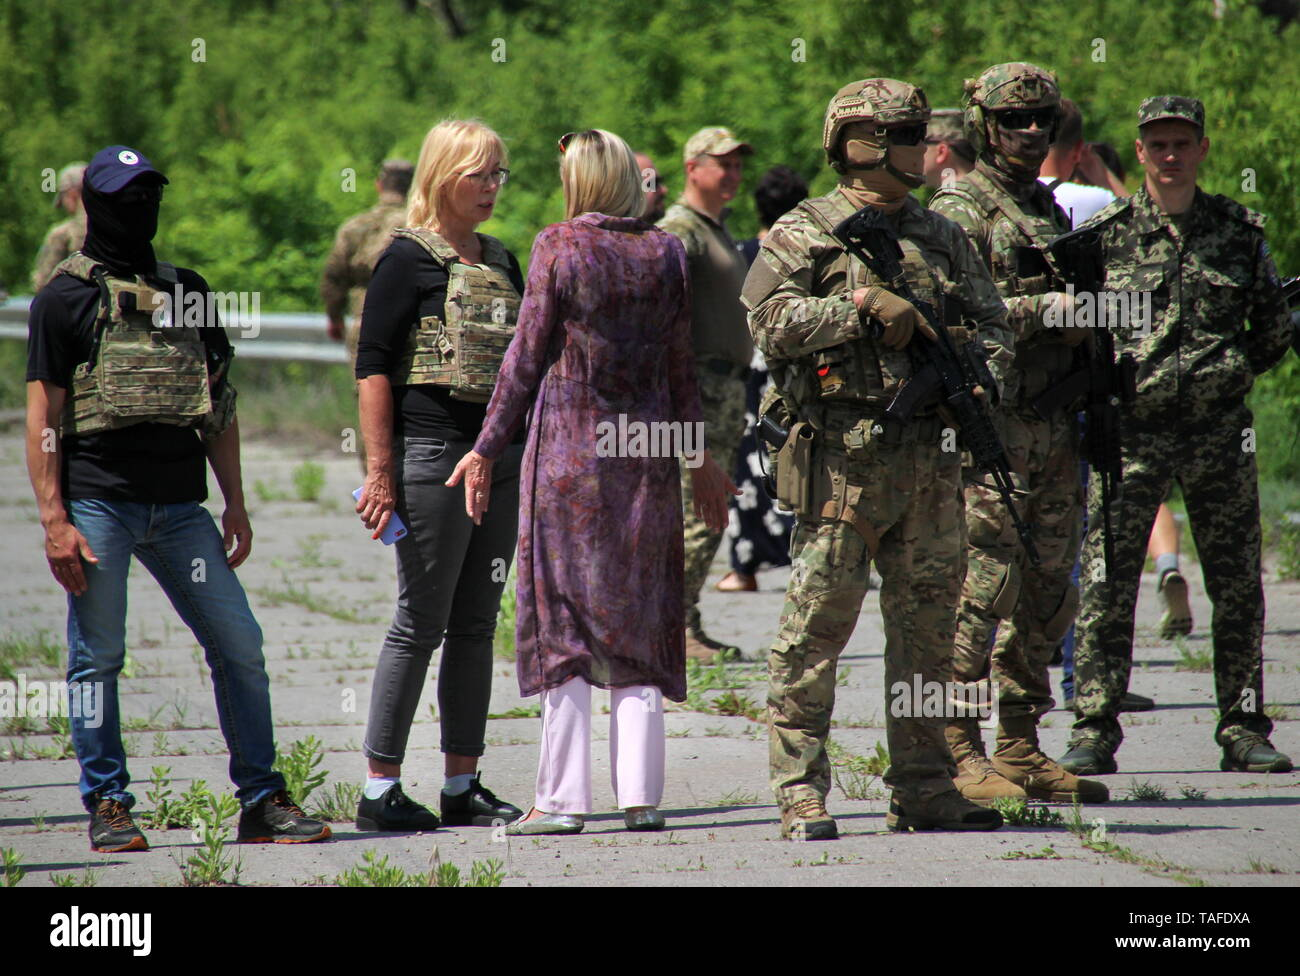 Ukraine. 24th May, 2019. LUGANSK REGION, UKRAINE - MAY 24, 2019: Lyudmyla Denisova (2nd L), Ukraine's Commissioner for Human Rights, and Olga Kobtseva (C) representing the Lugansk People's Republic in the humanitarian subgroup of the Trilateral Contact Group on Ukraine, meet as the republic transfers 60 prisoners convicted before the 2014 Ukrainian crisis, to Ukraine. Alexander Reka/TASS Credit: ITAR-TASS News Agency/Alamy Live News - Stock Image